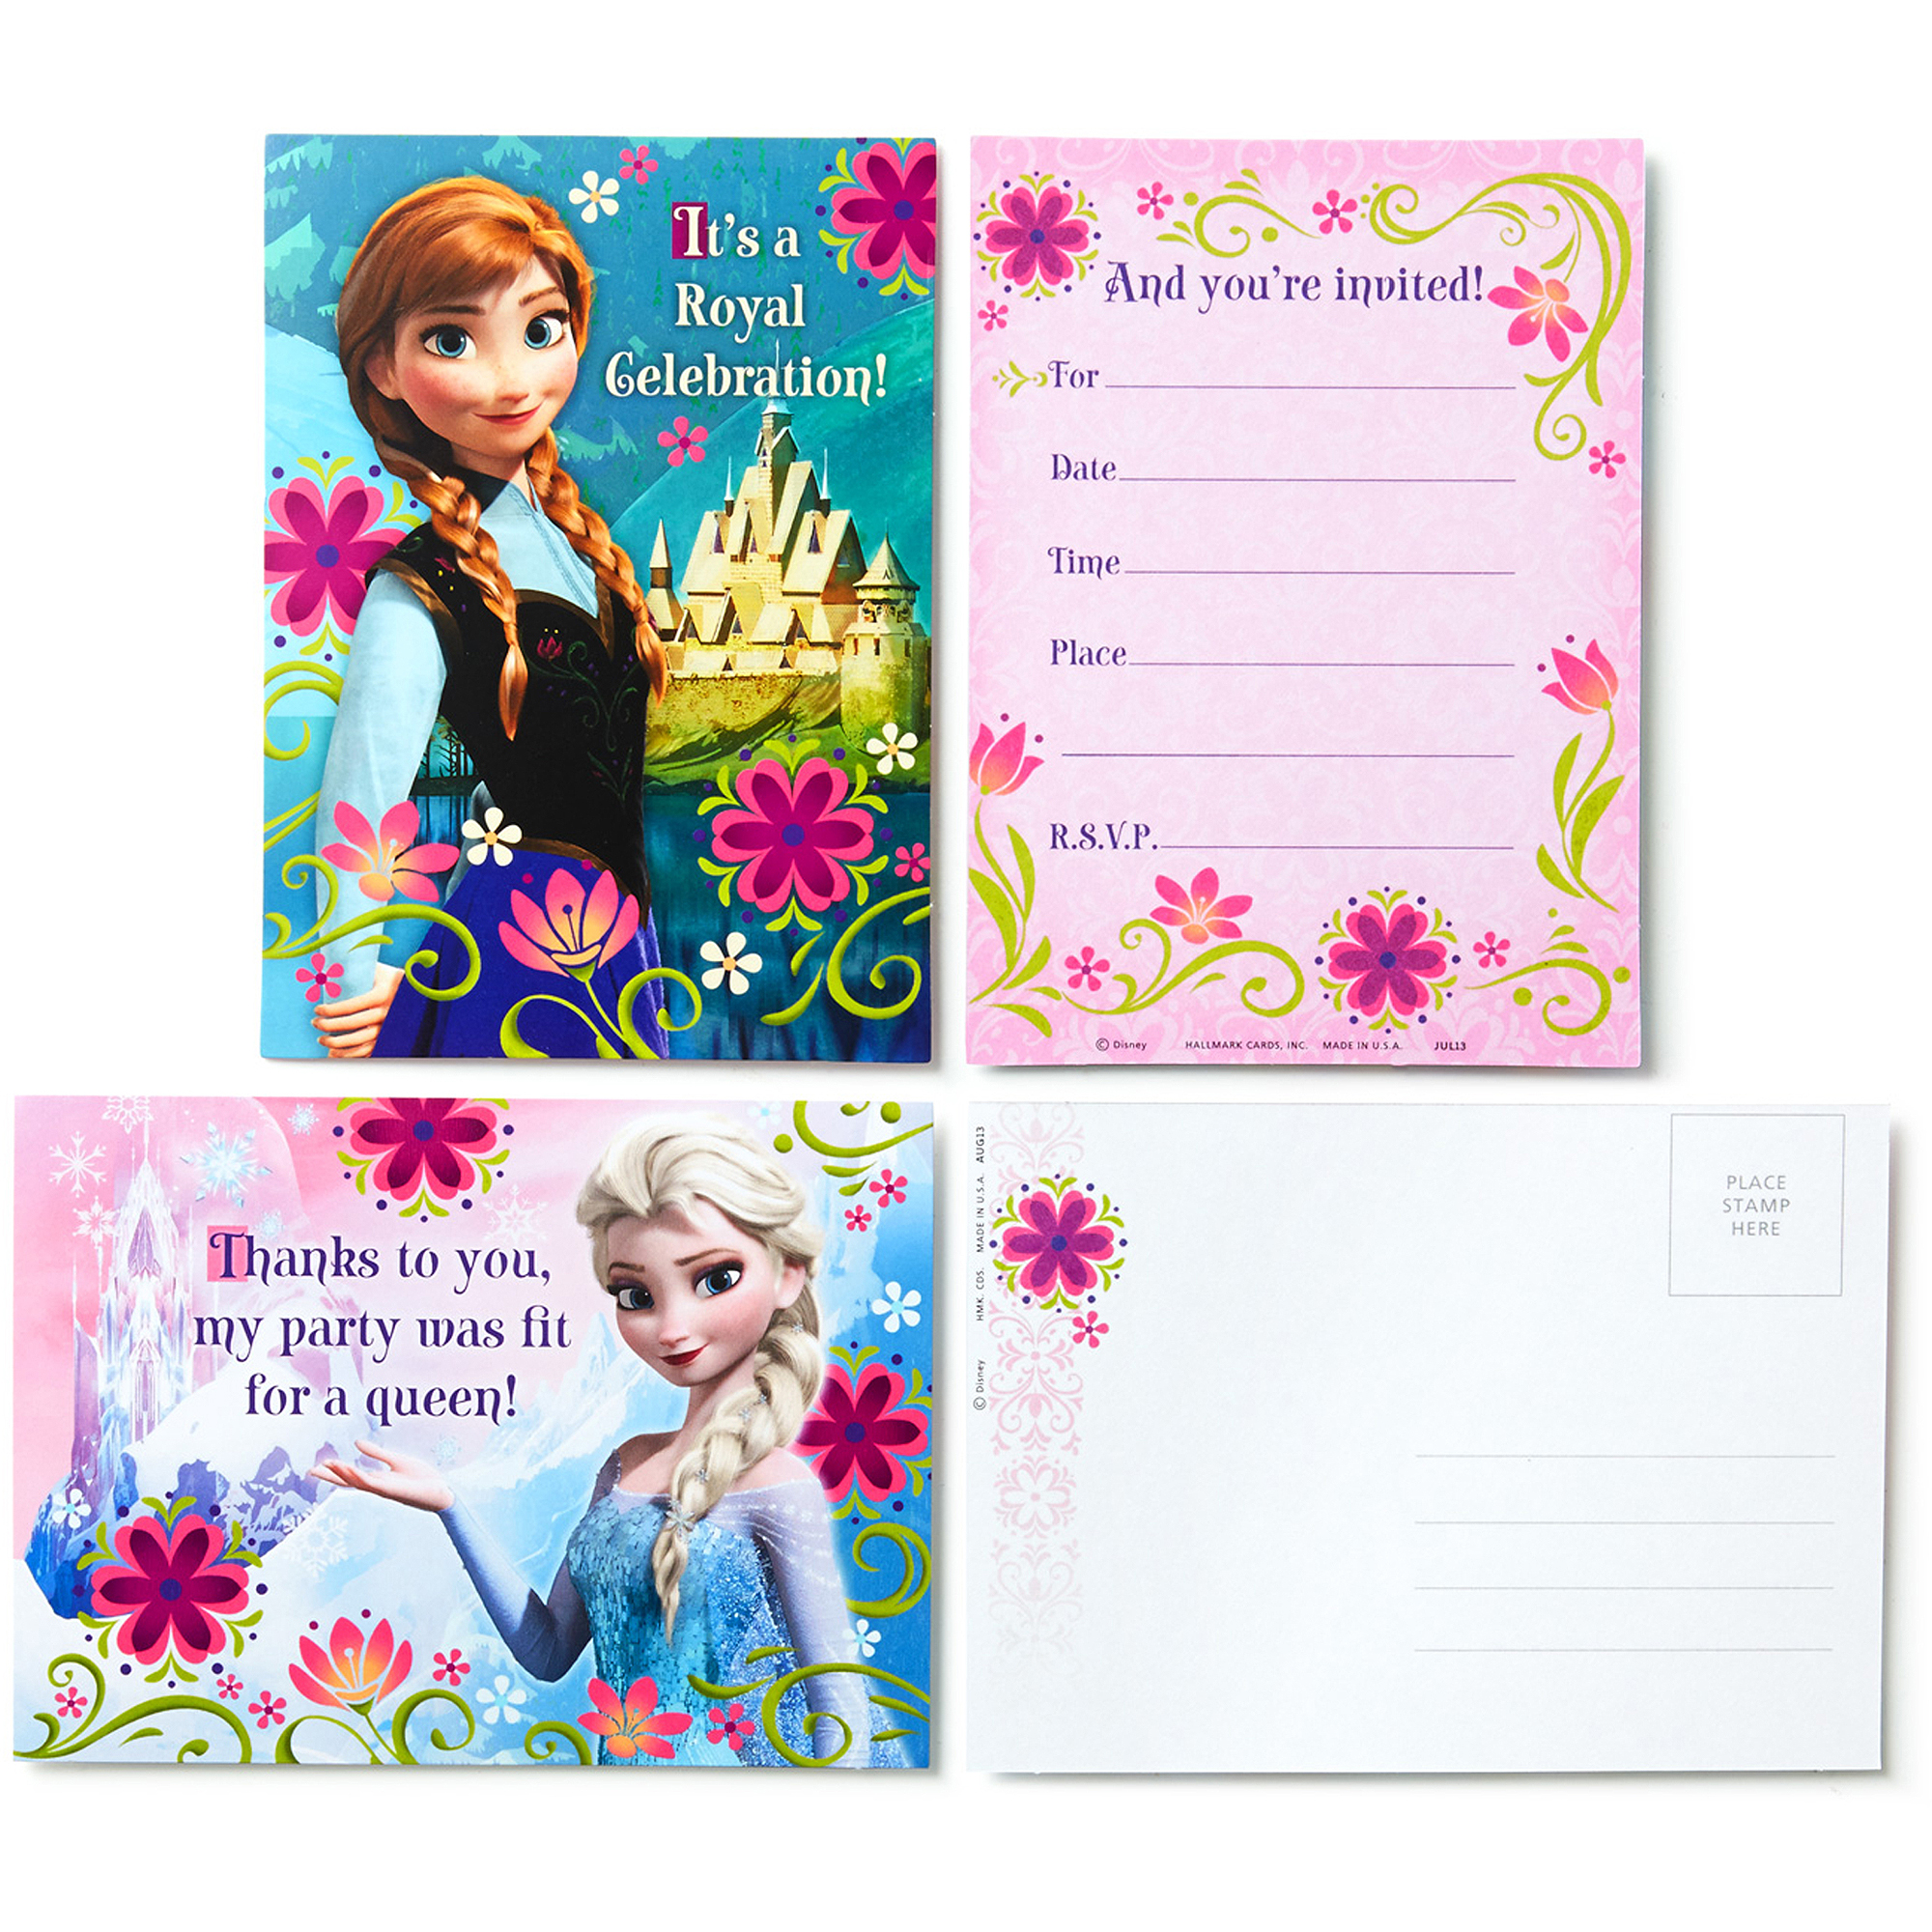 Hallmark Party Disney Frozen Invitations with Envelopes and Thank-You Postcards